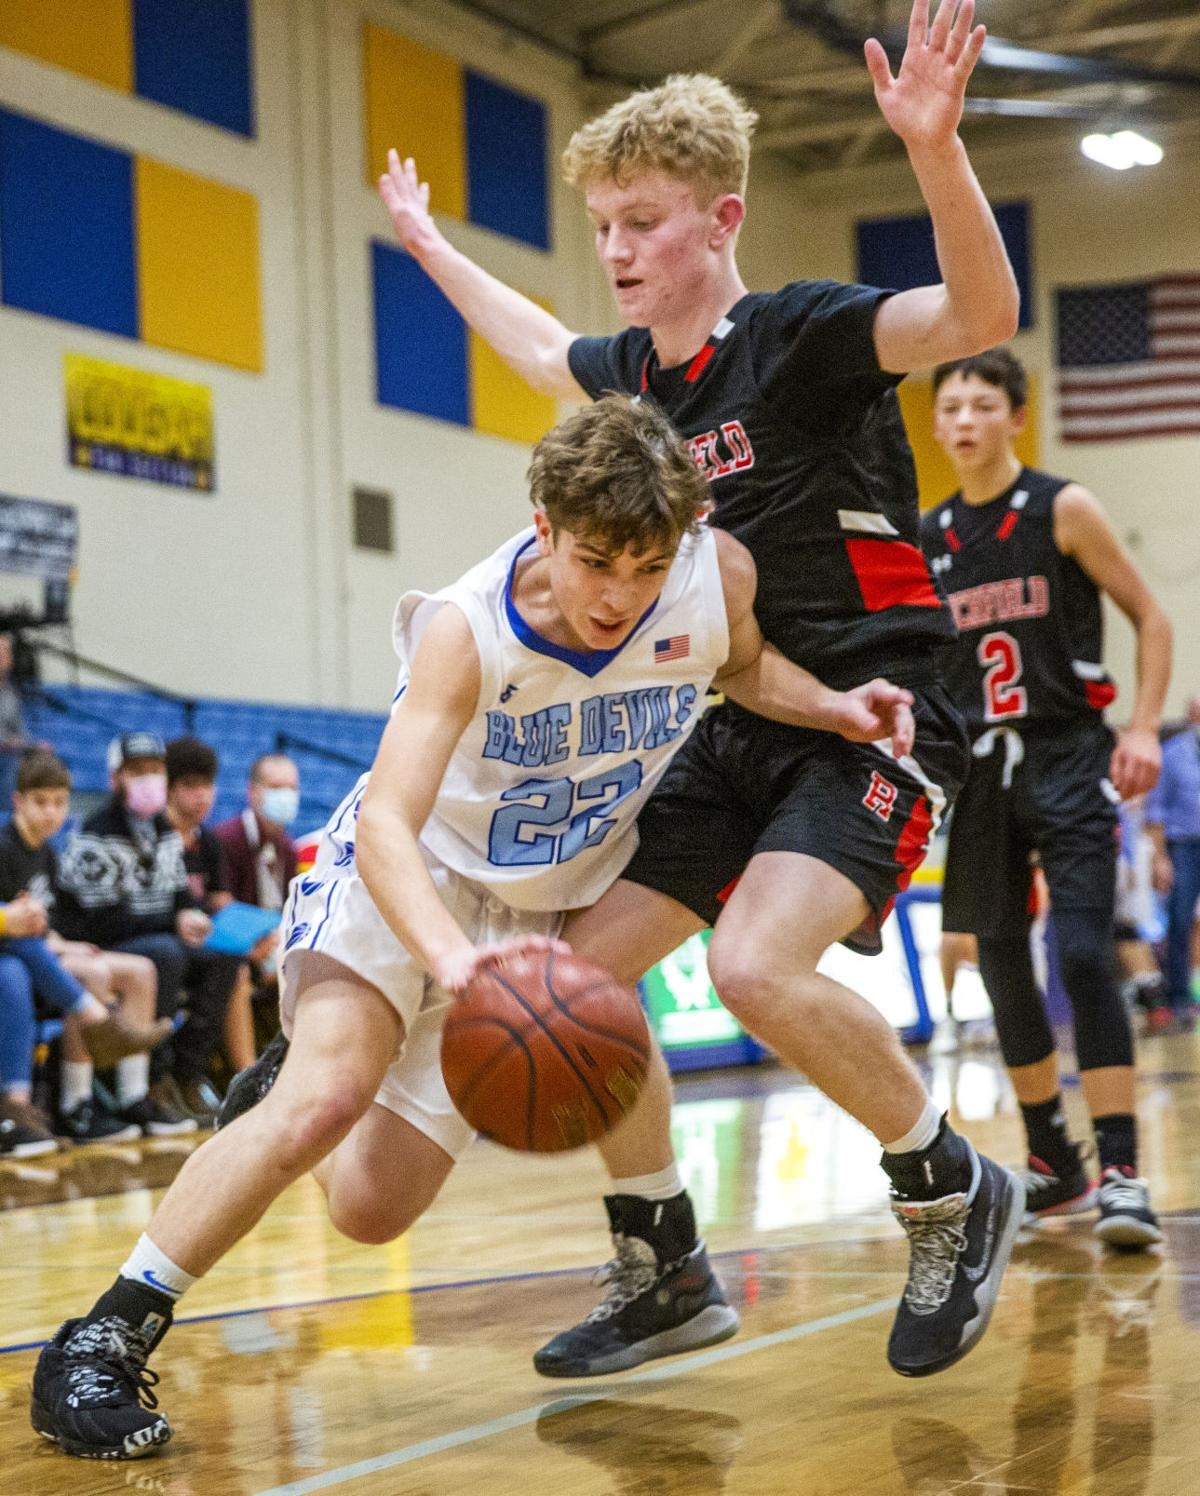 Dietrich defeats Richfield to advance to championships